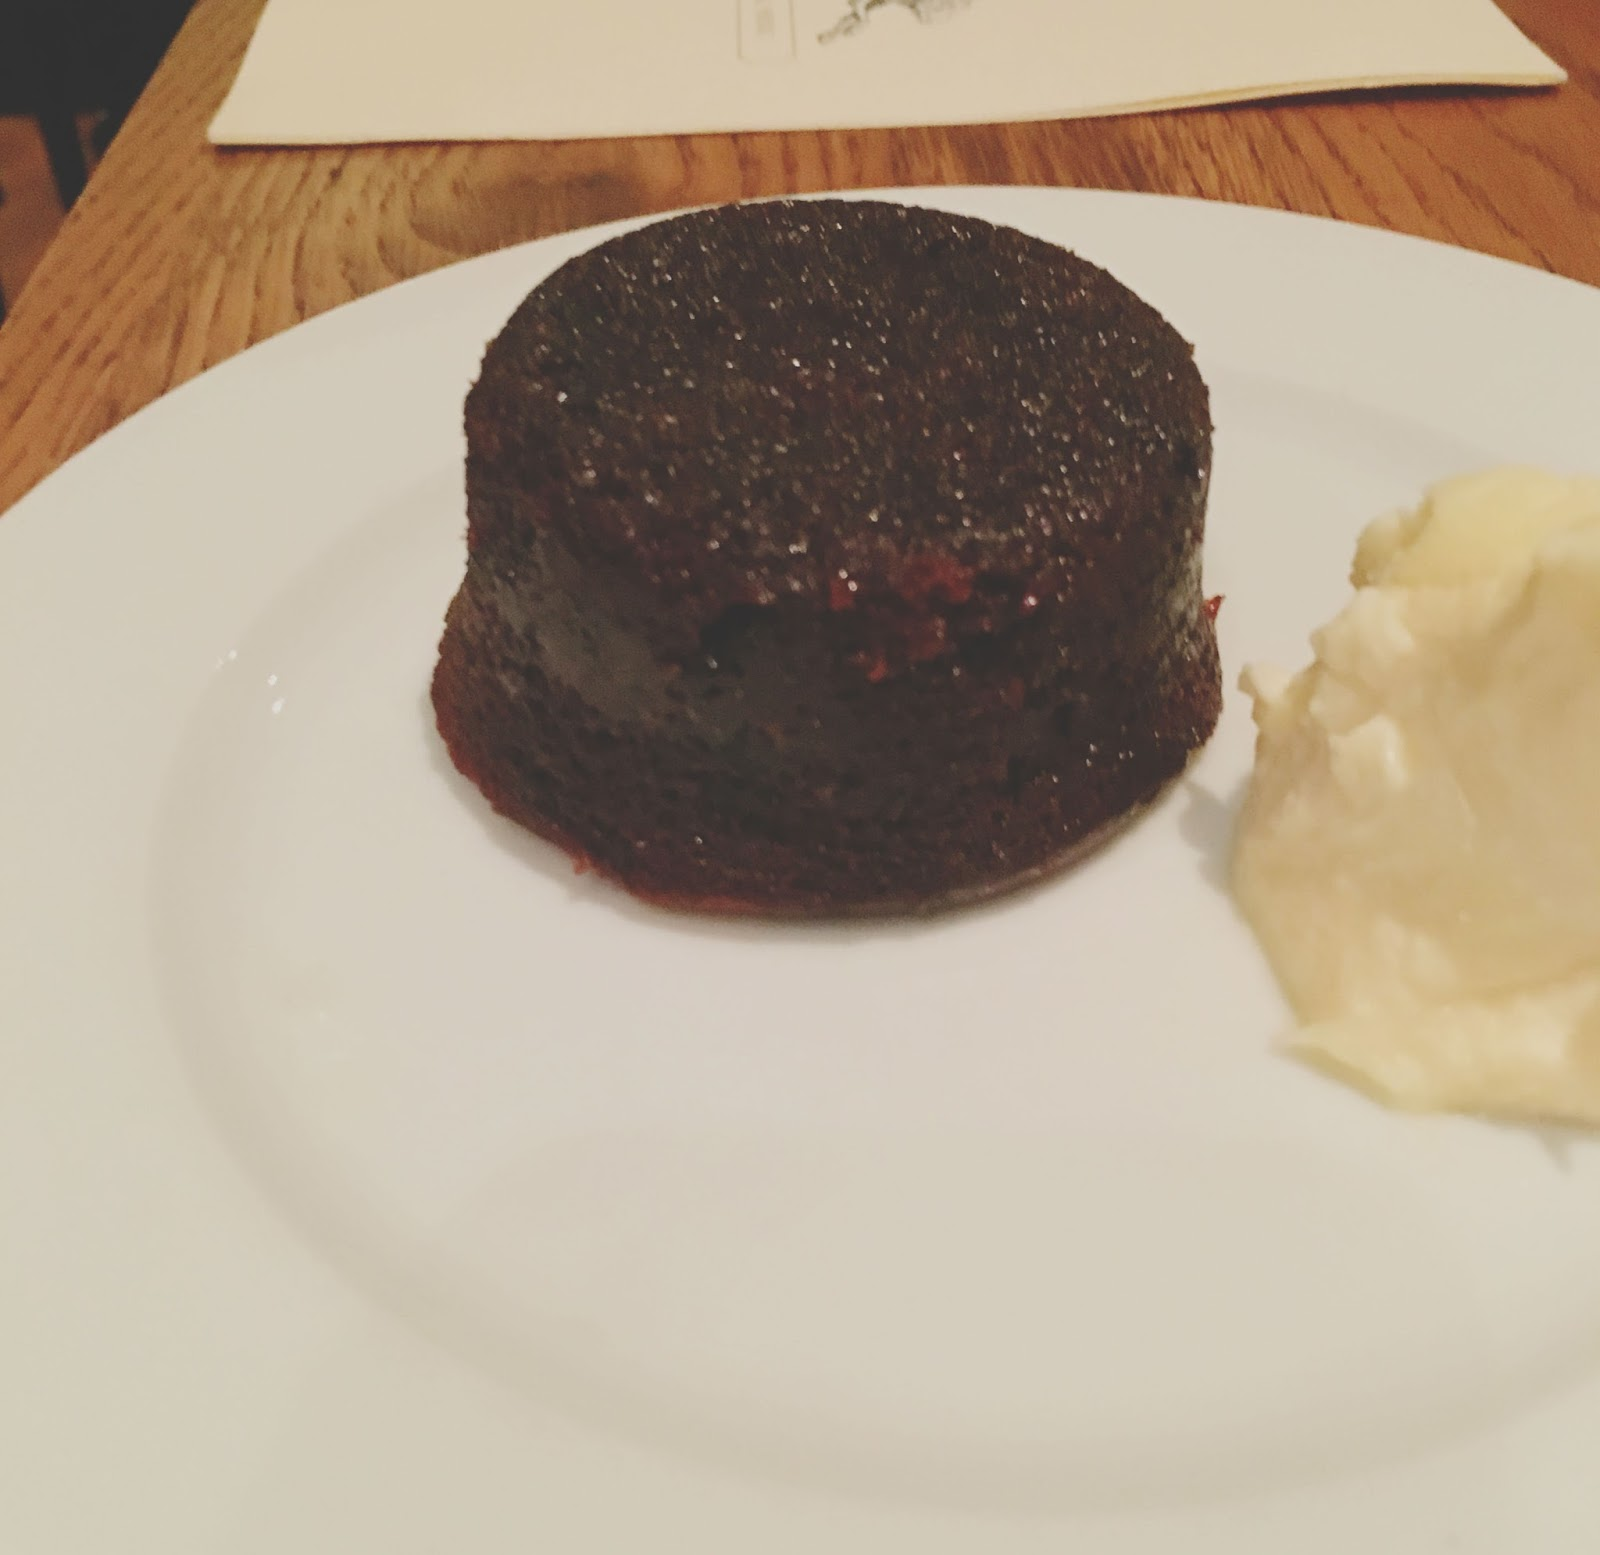 sticky toffee pudding at Hunky Dory - A restaurant in Houston, Texas